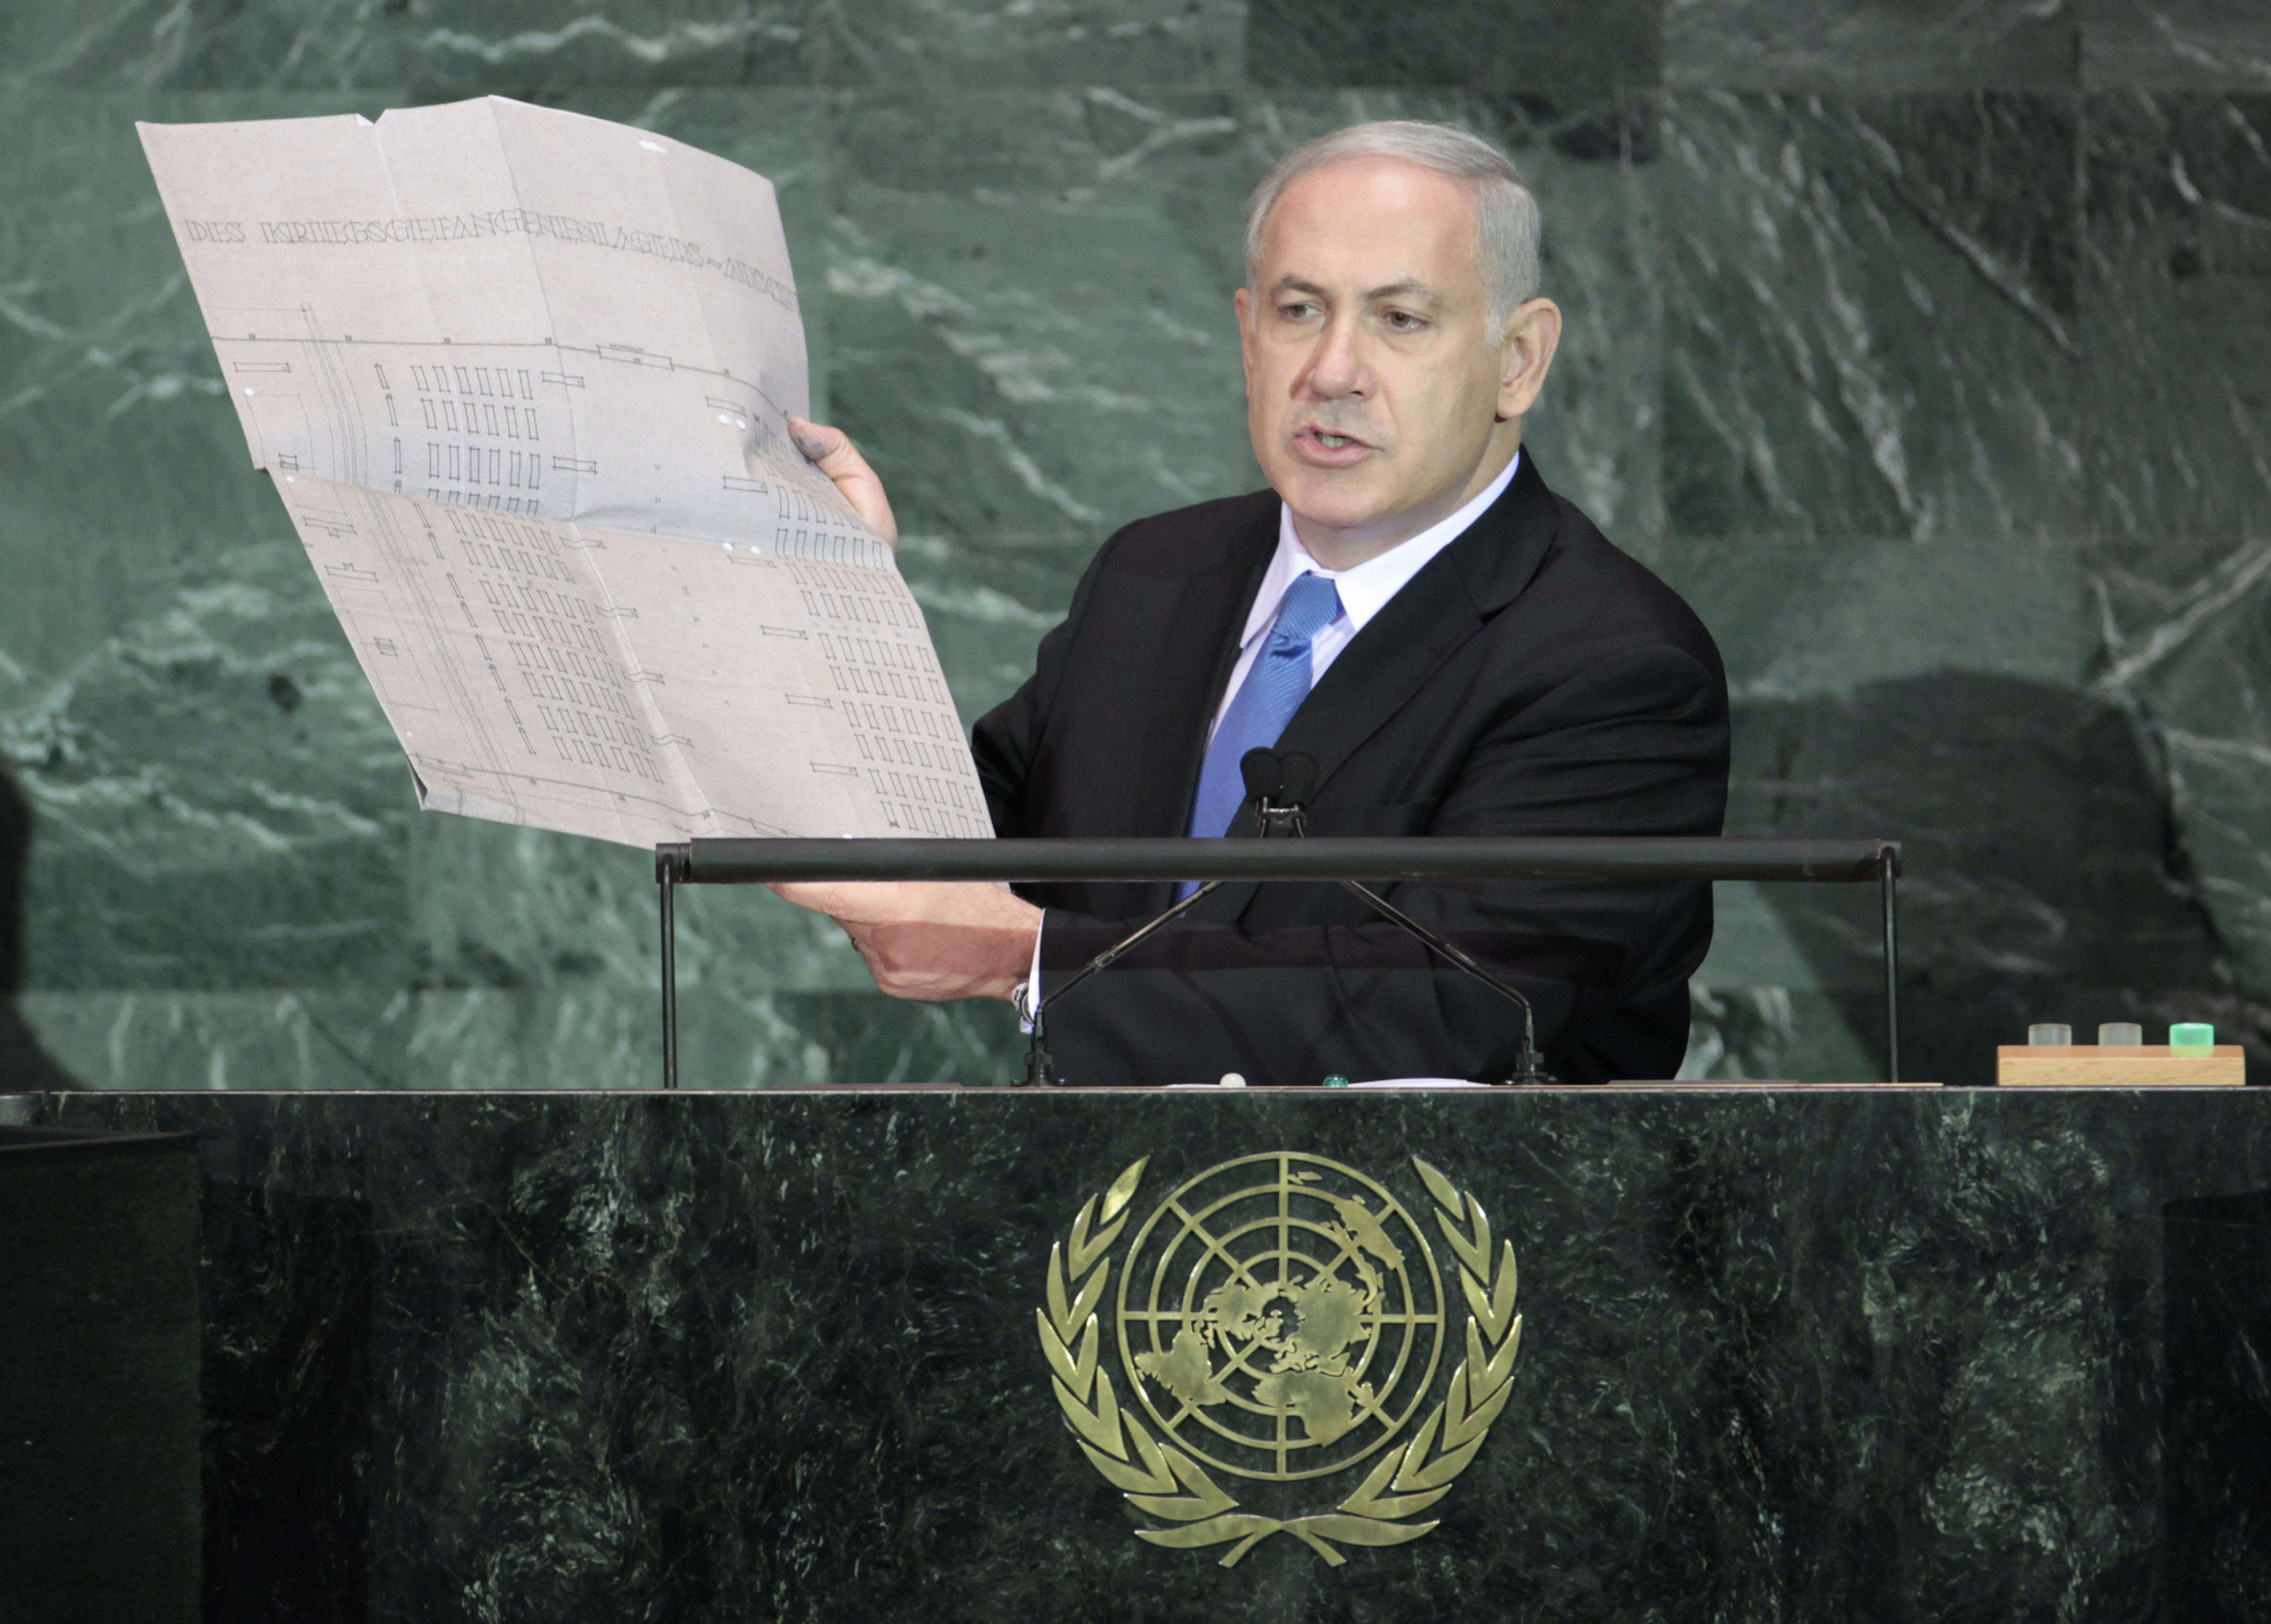 Israeli Prime Minister Benjamin Netanyahu holds up a document outlining plans for the Auschwitz death camp as he addresses the 64th United Nations General Assembly at UN headquarters in New York, September 24, 2009. (Reuters)